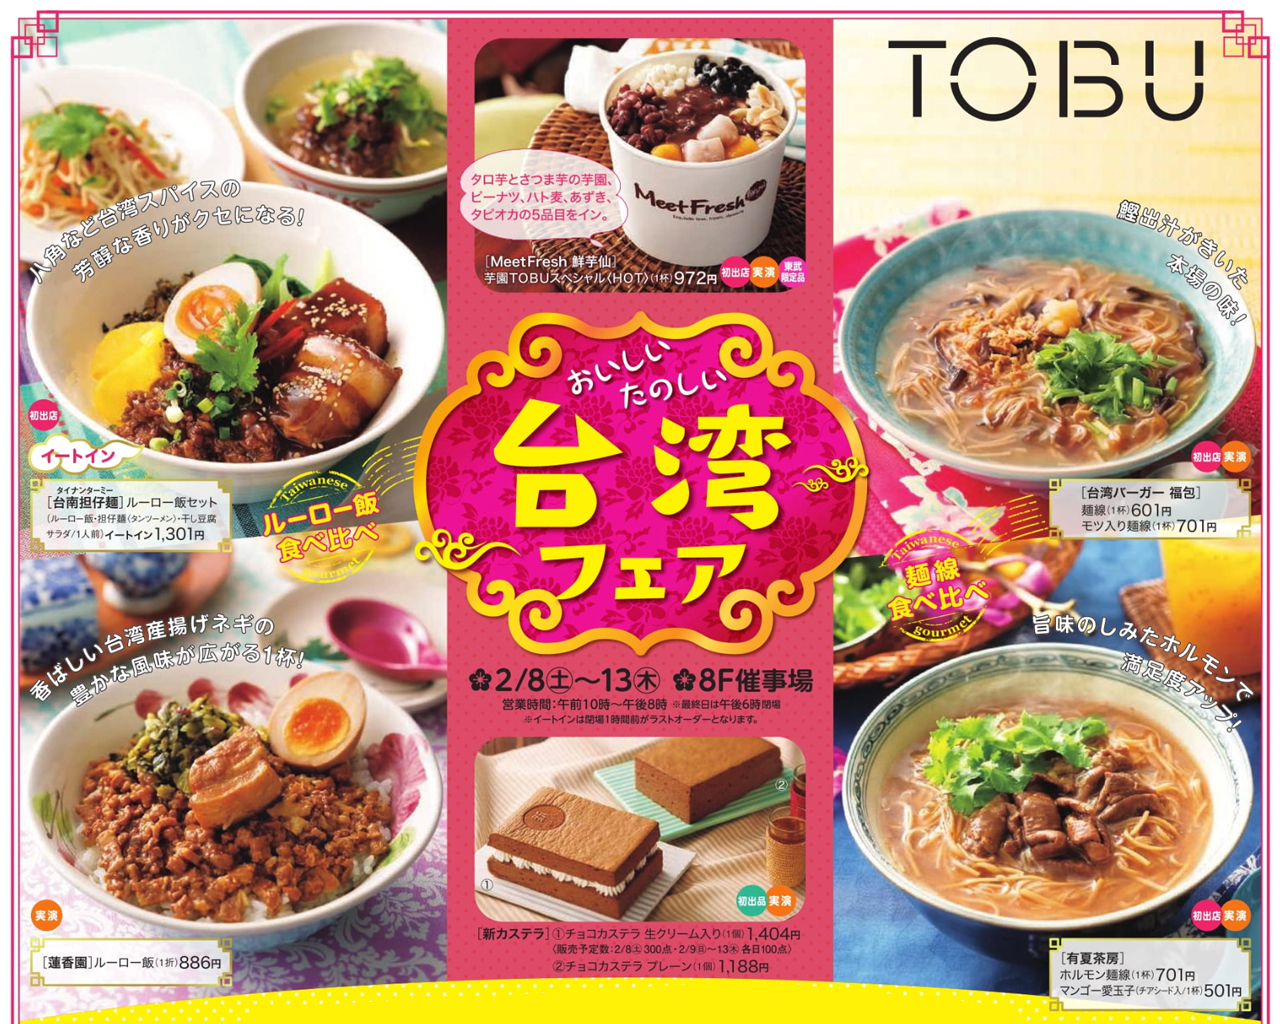 Delicious! Fun! Taiwan gourmet event at Tobu department store Ikebukuro